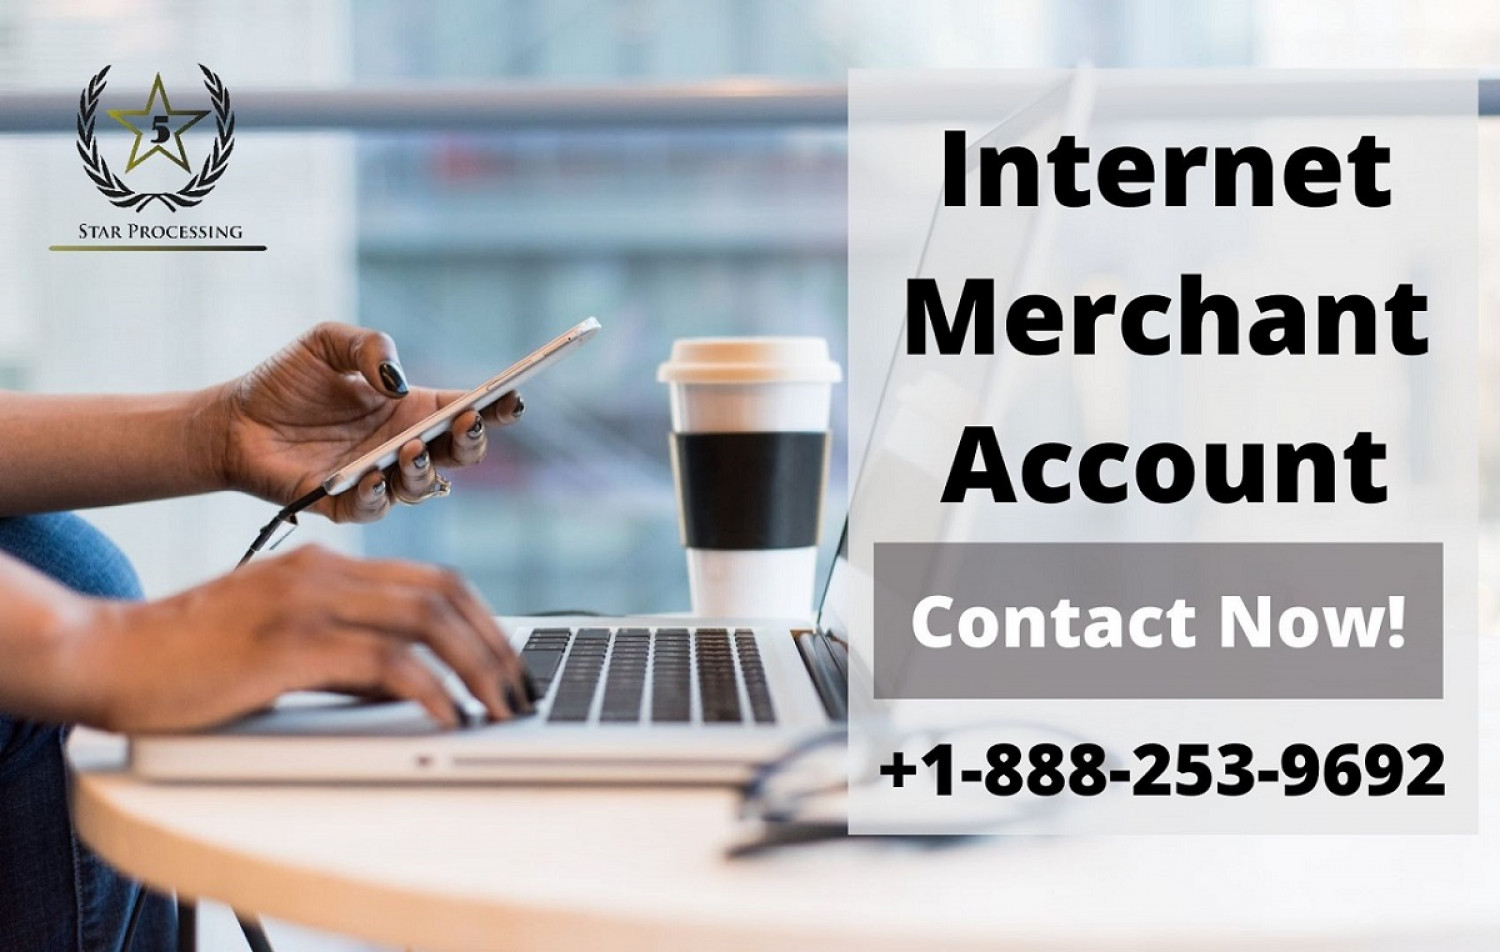 Internet Merchant Account: 5 Tips for Integrating Infographic